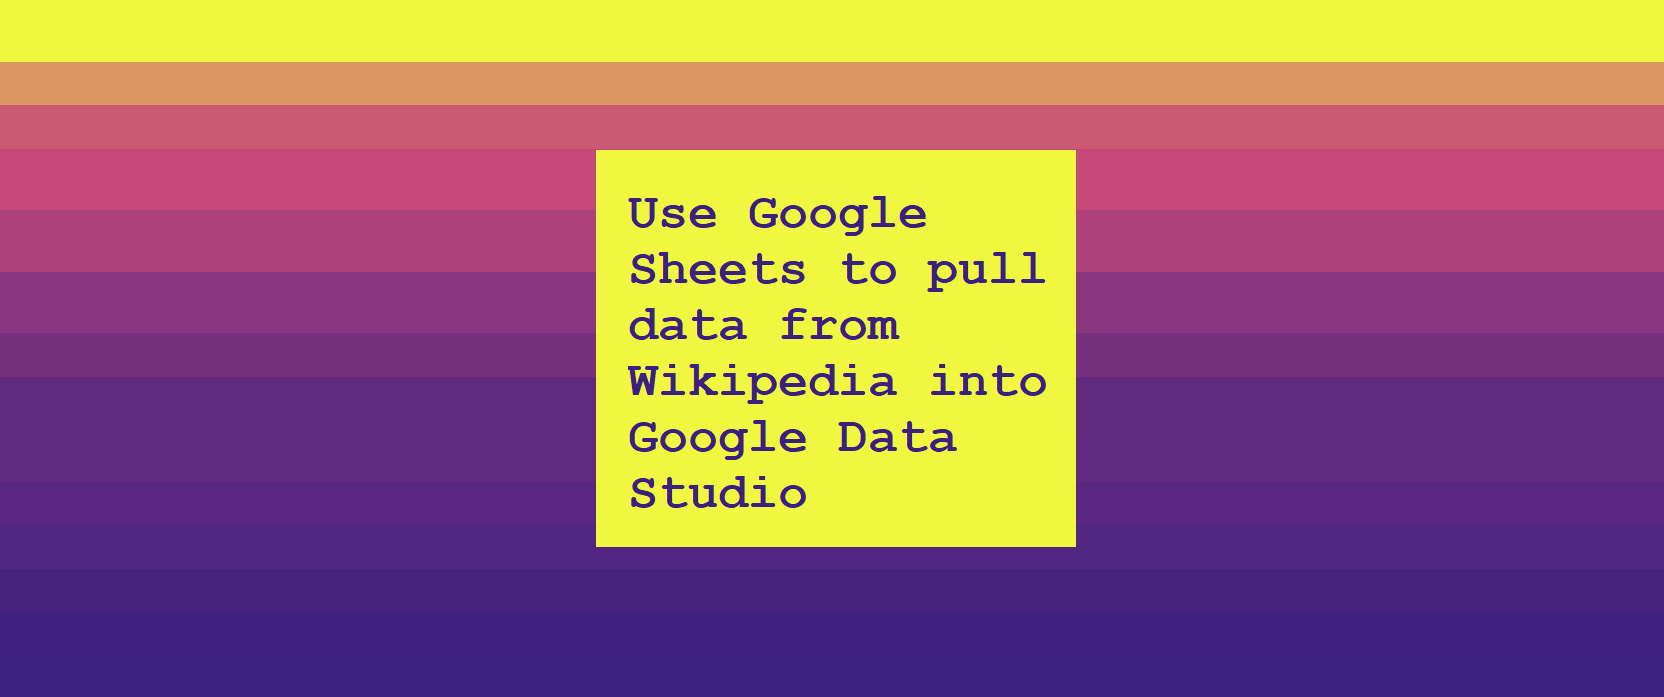 Use Google Sheets to pull data from Wikipedia to Google Data Studio